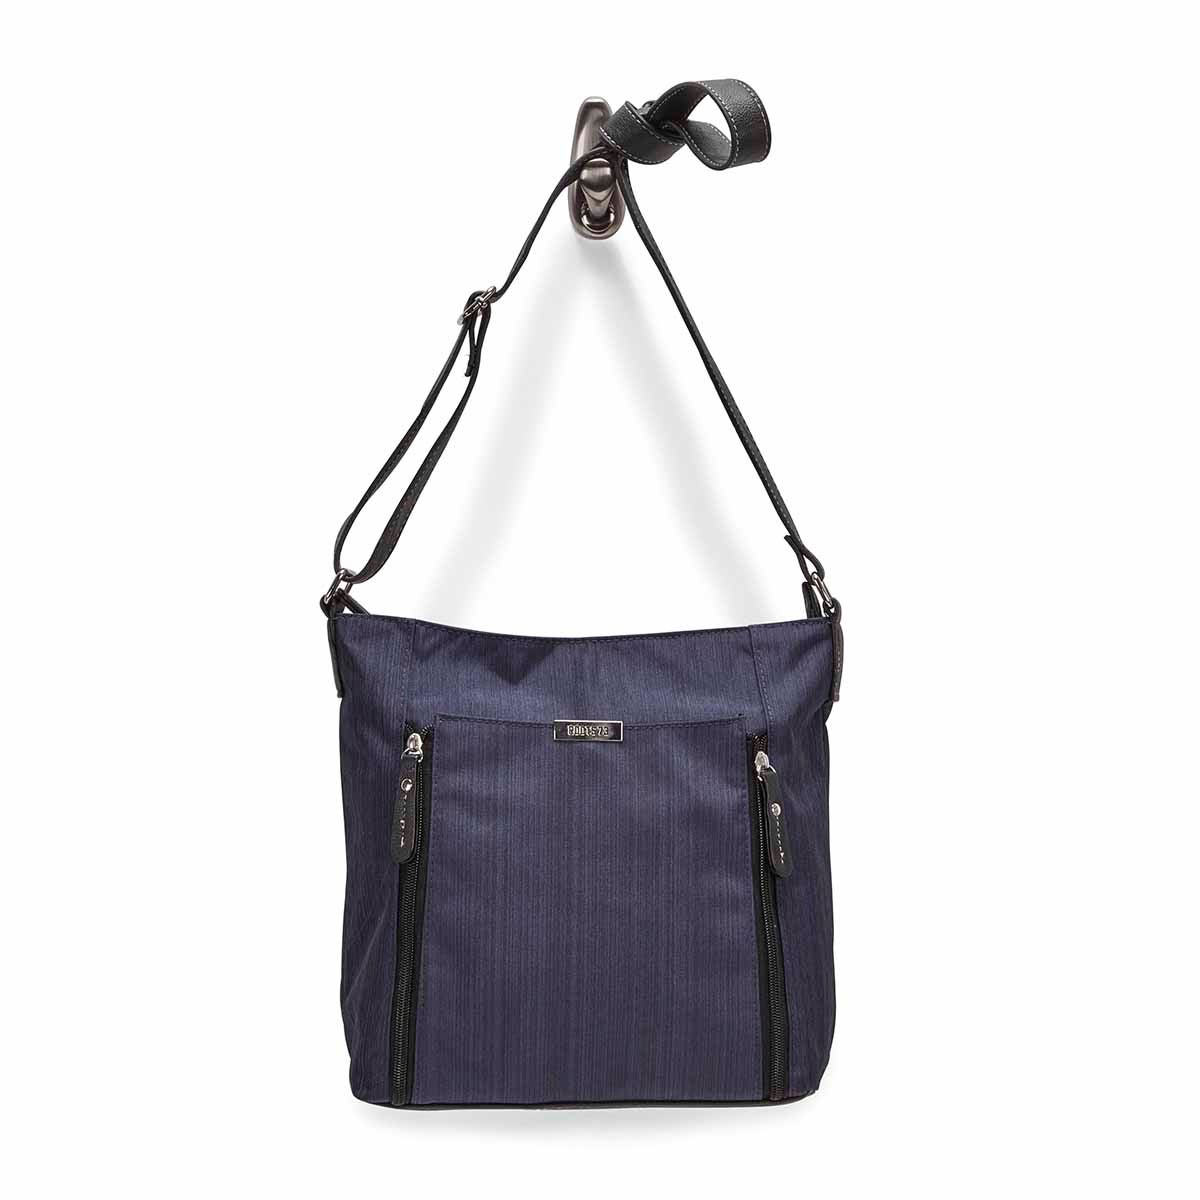 Lds nvy double vertical pocket crossbody